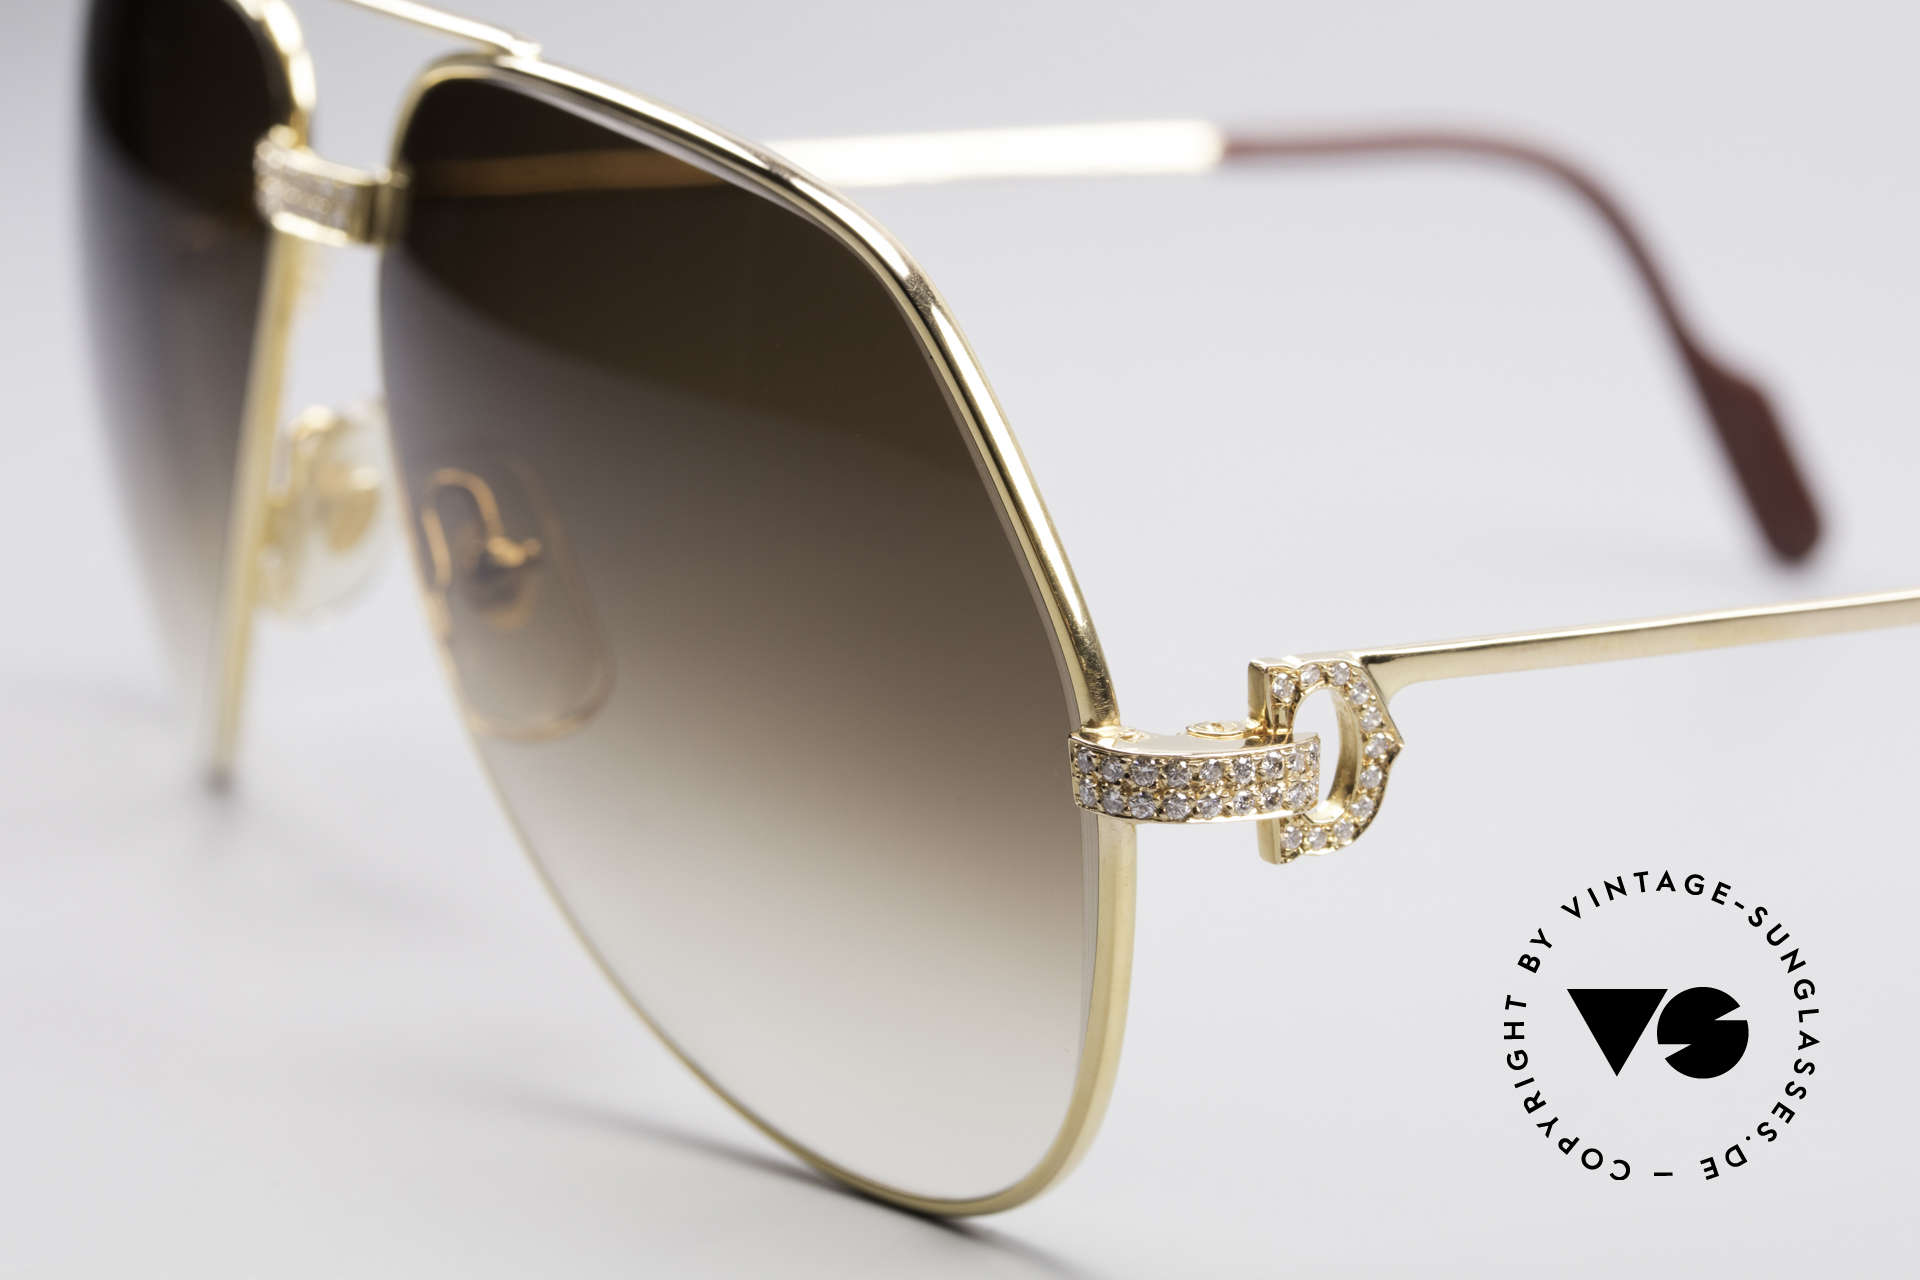 Cartier Grand Pavage Diamond Glasses, basic price was 25.300 DM (dependent on the gold price), Made for Men